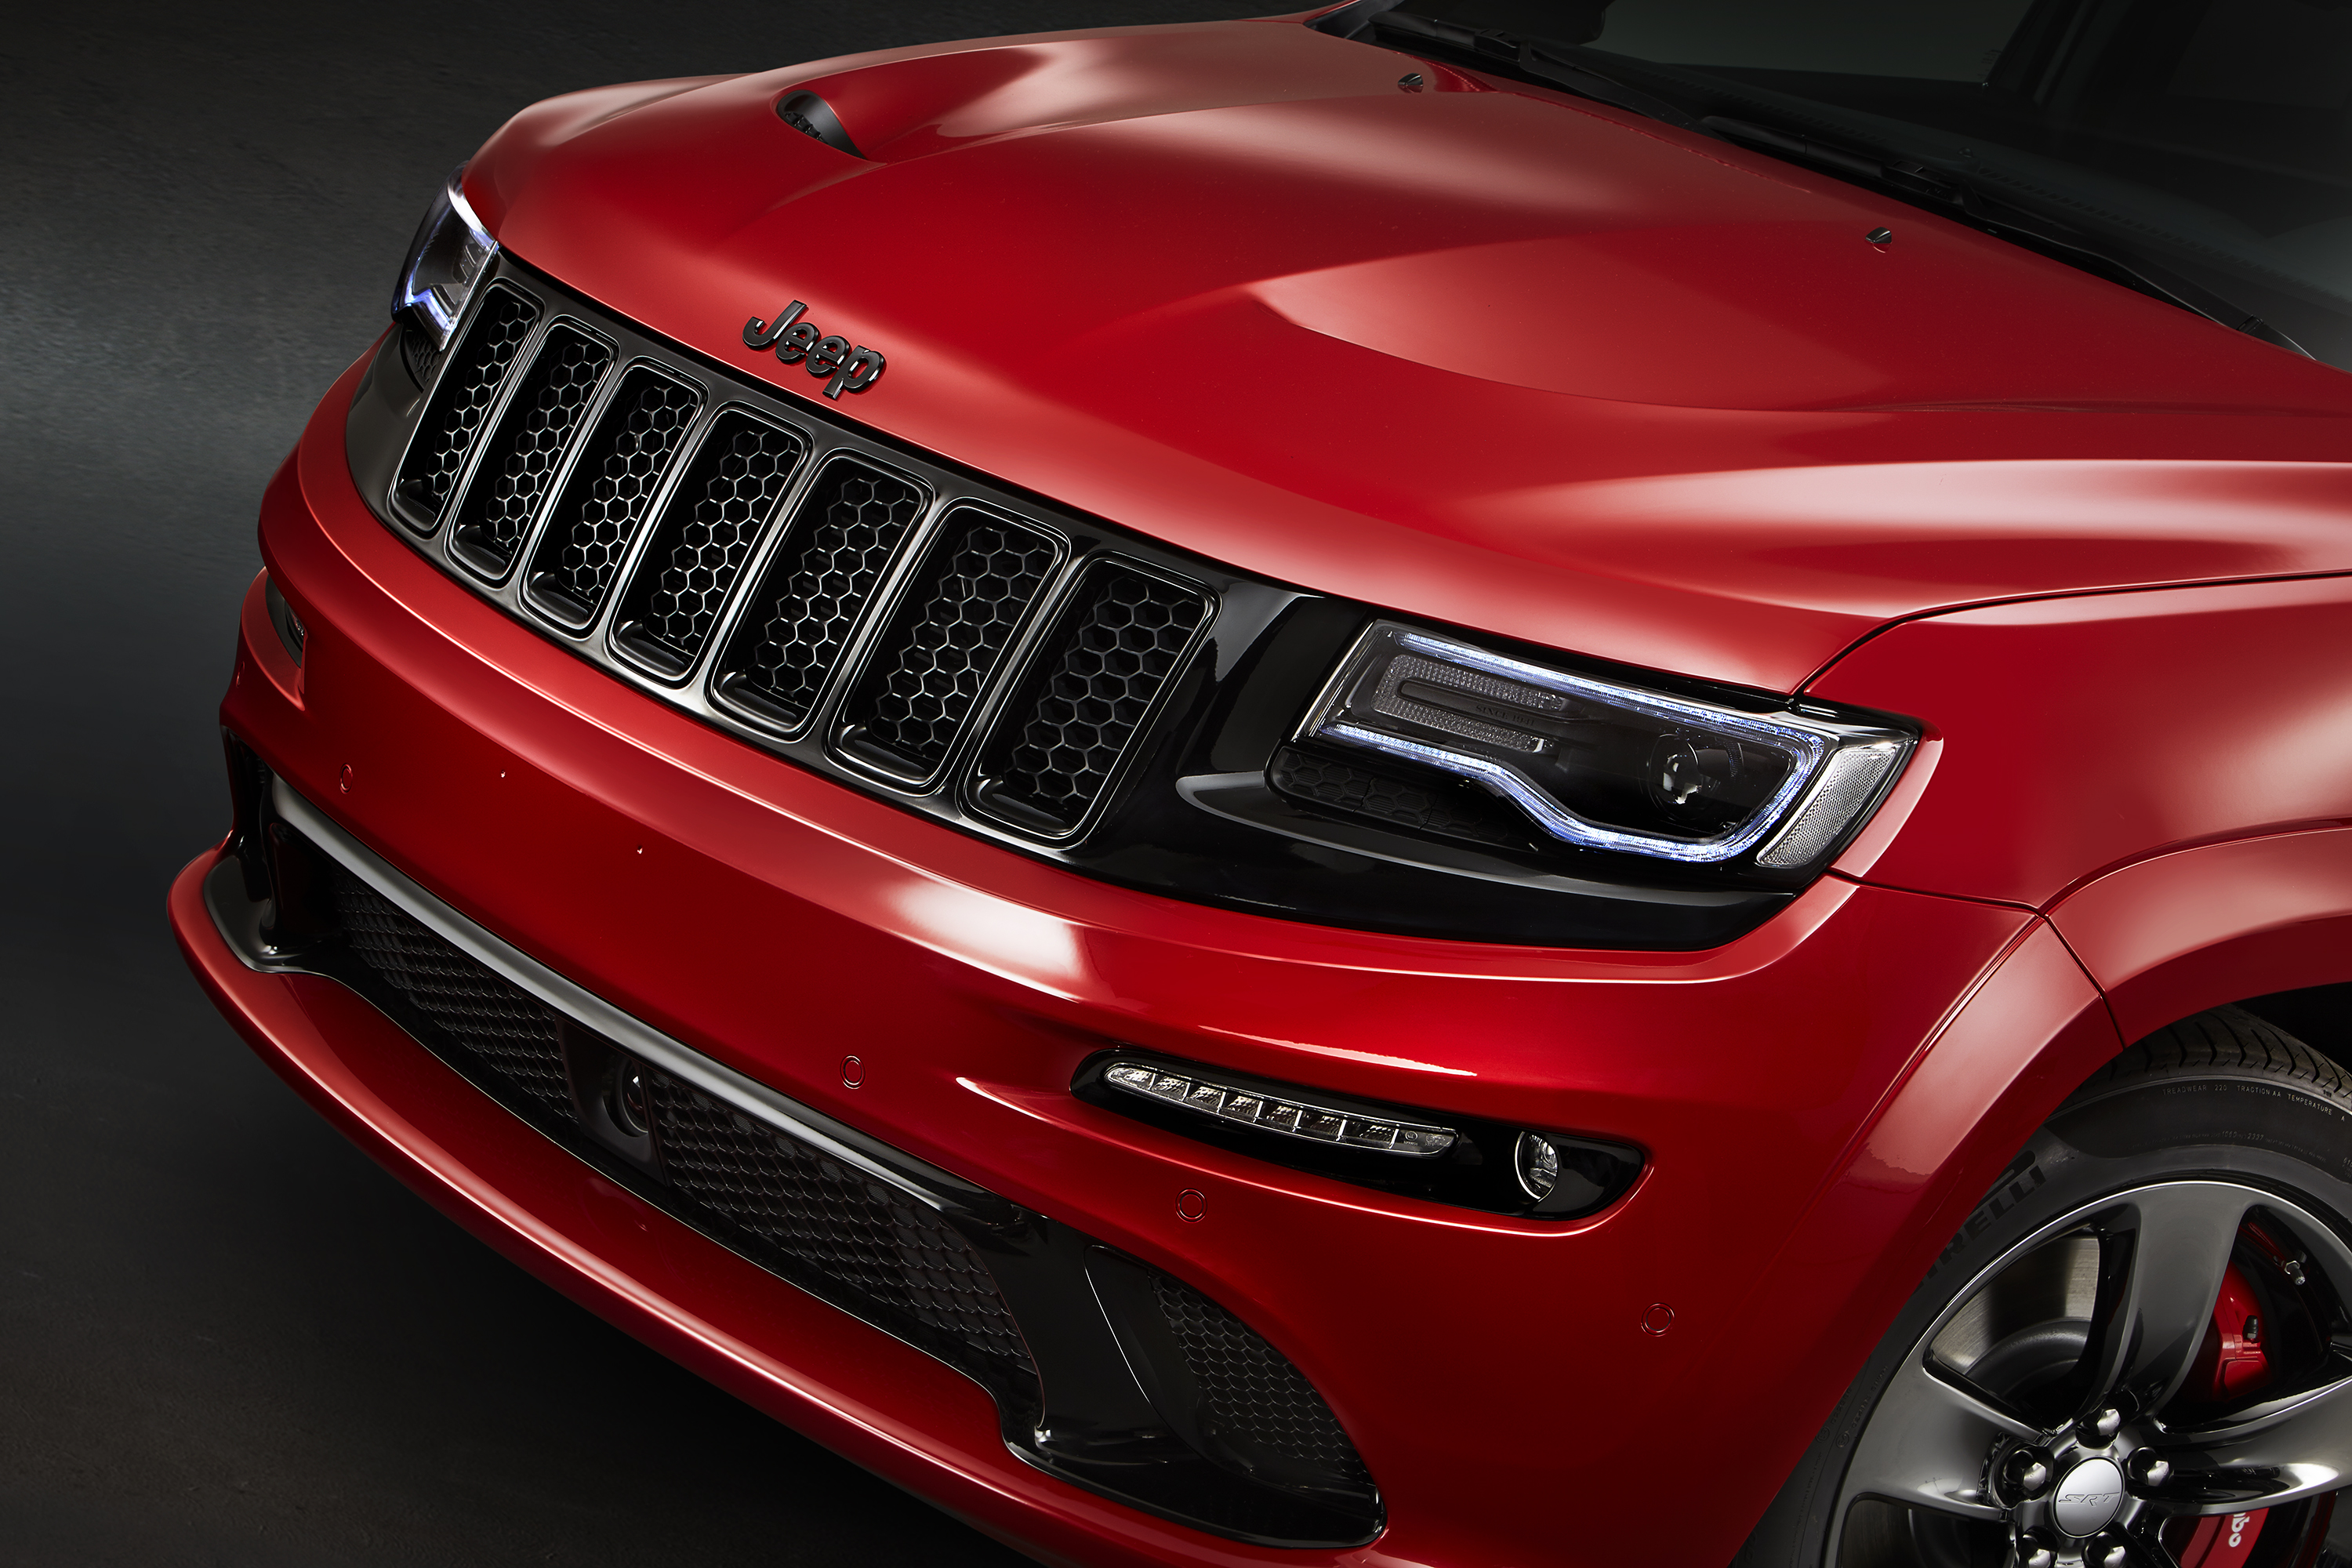 hellcat powered jeep grand cherokee confirmed for july 2017 autoevolution. Black Bedroom Furniture Sets. Home Design Ideas